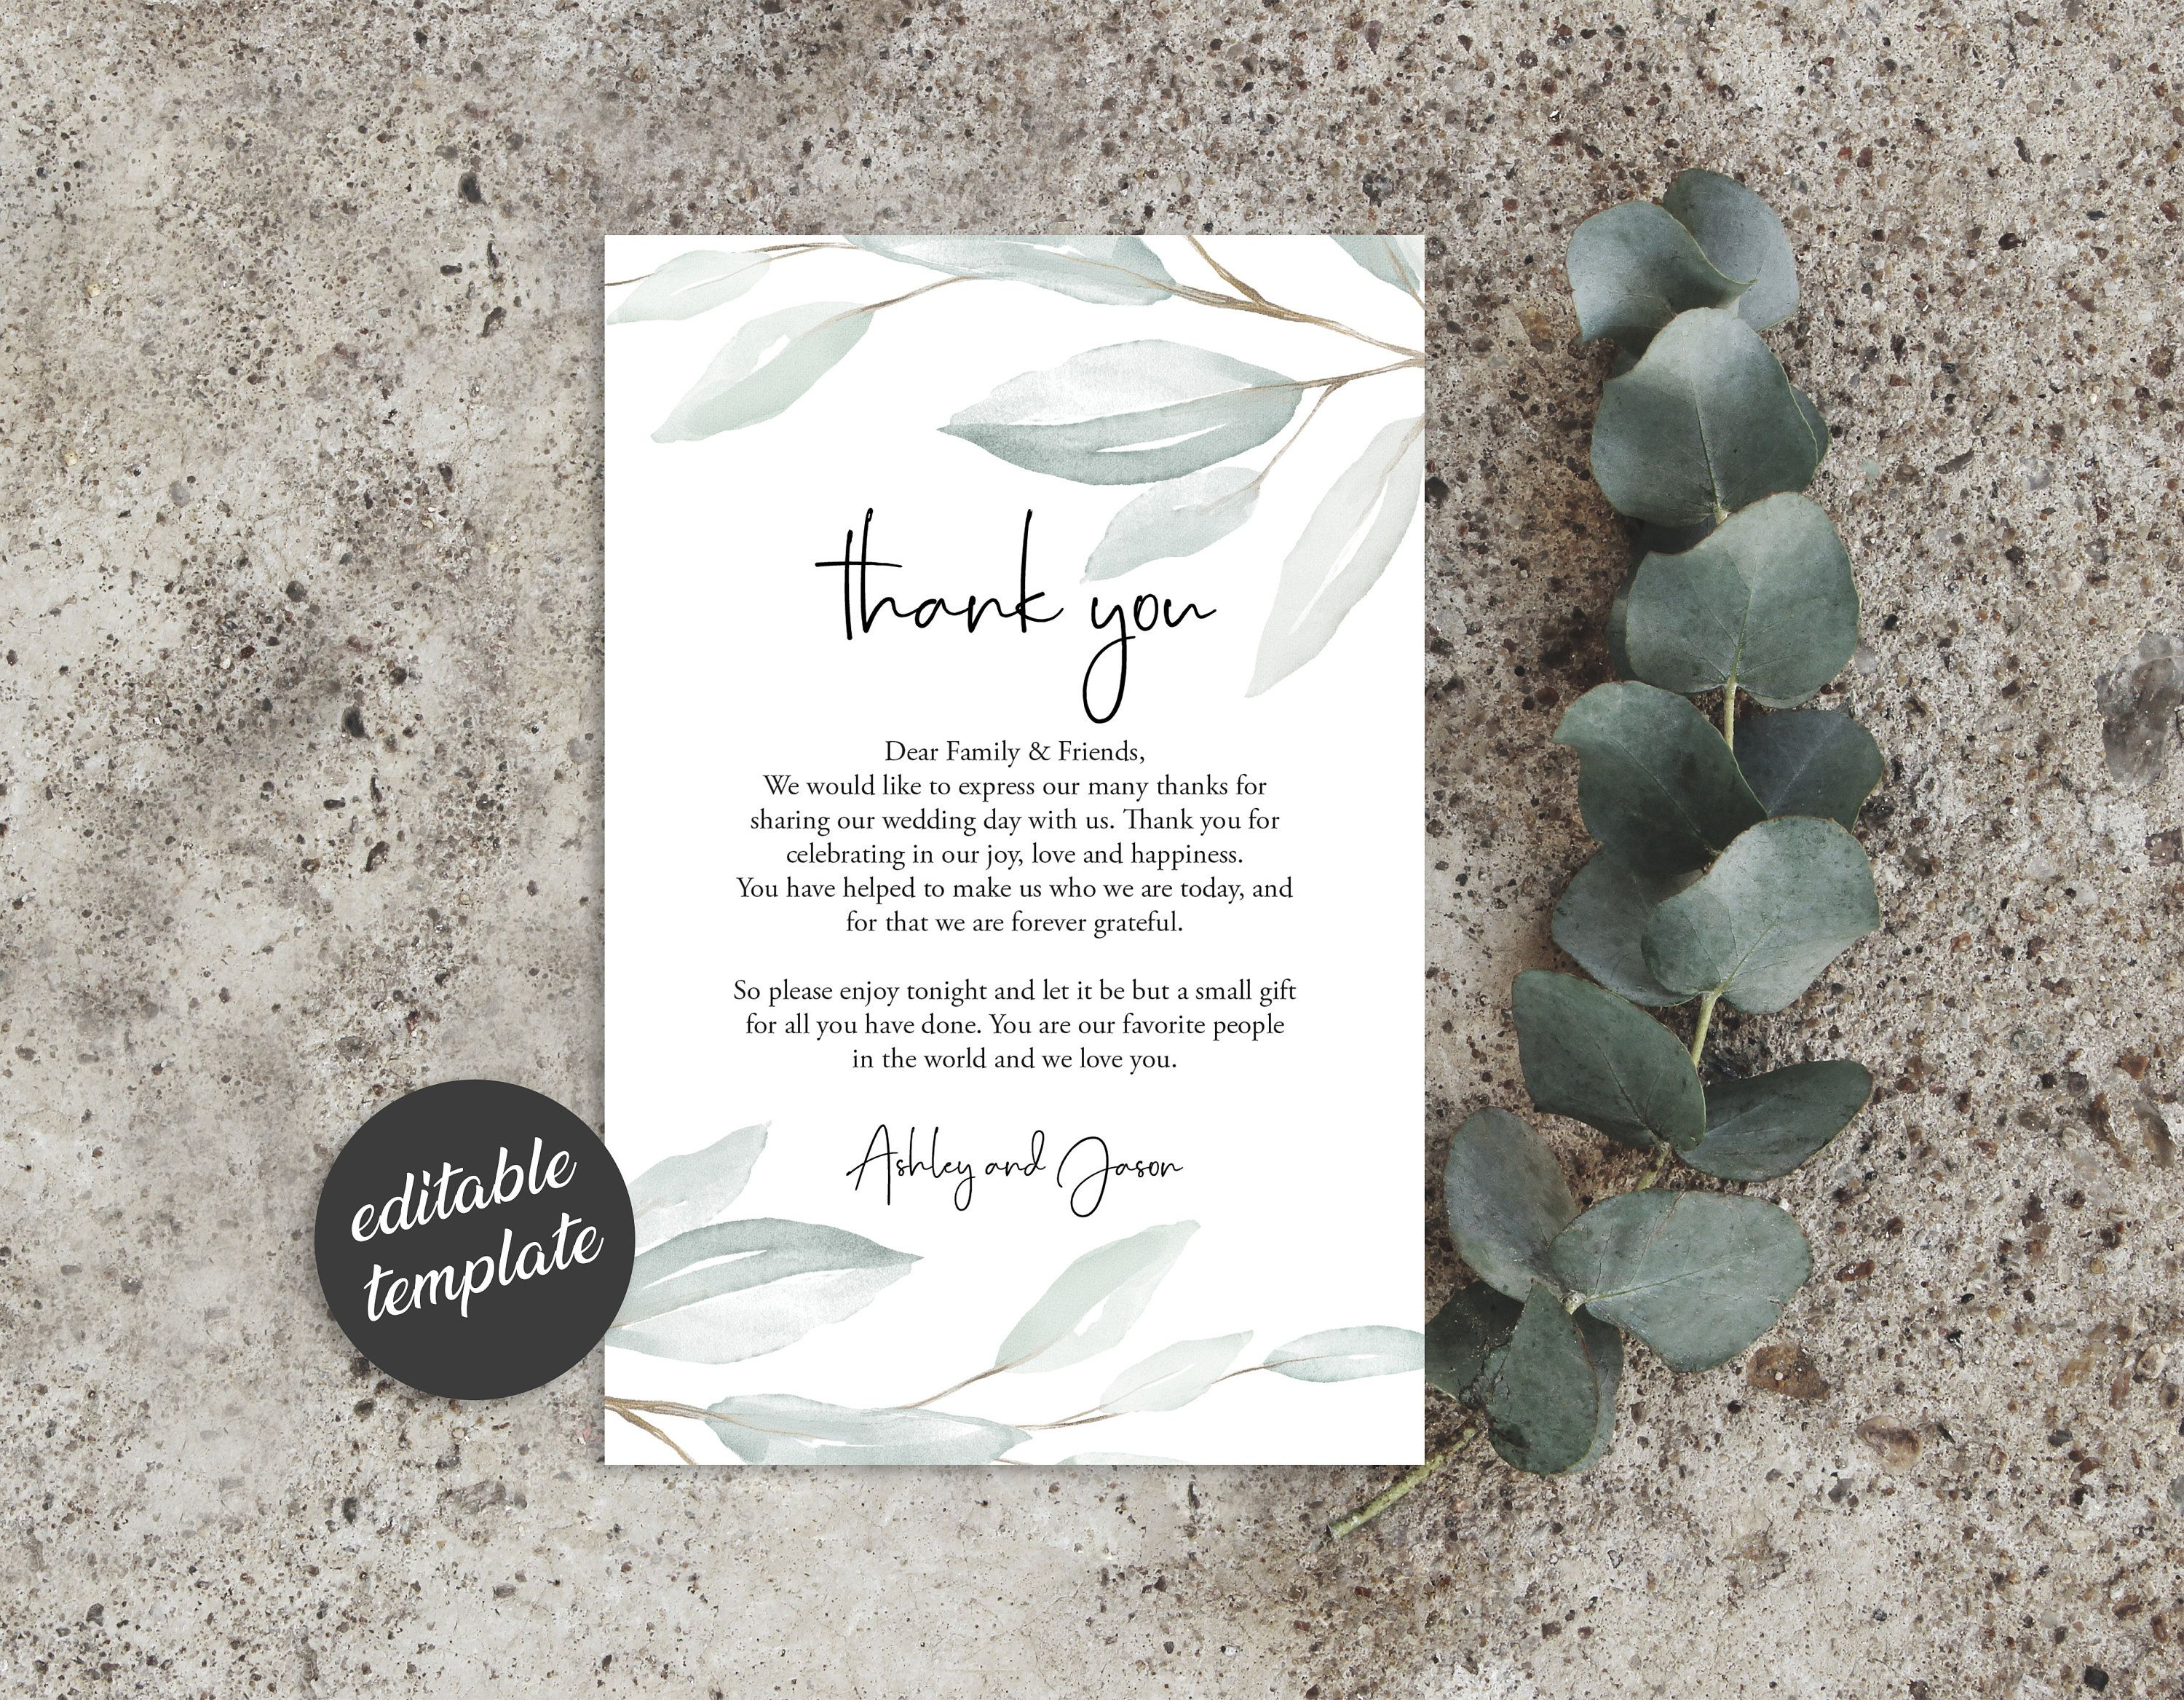 Thank You Letter Template, Greenery Wedding In Lieu of